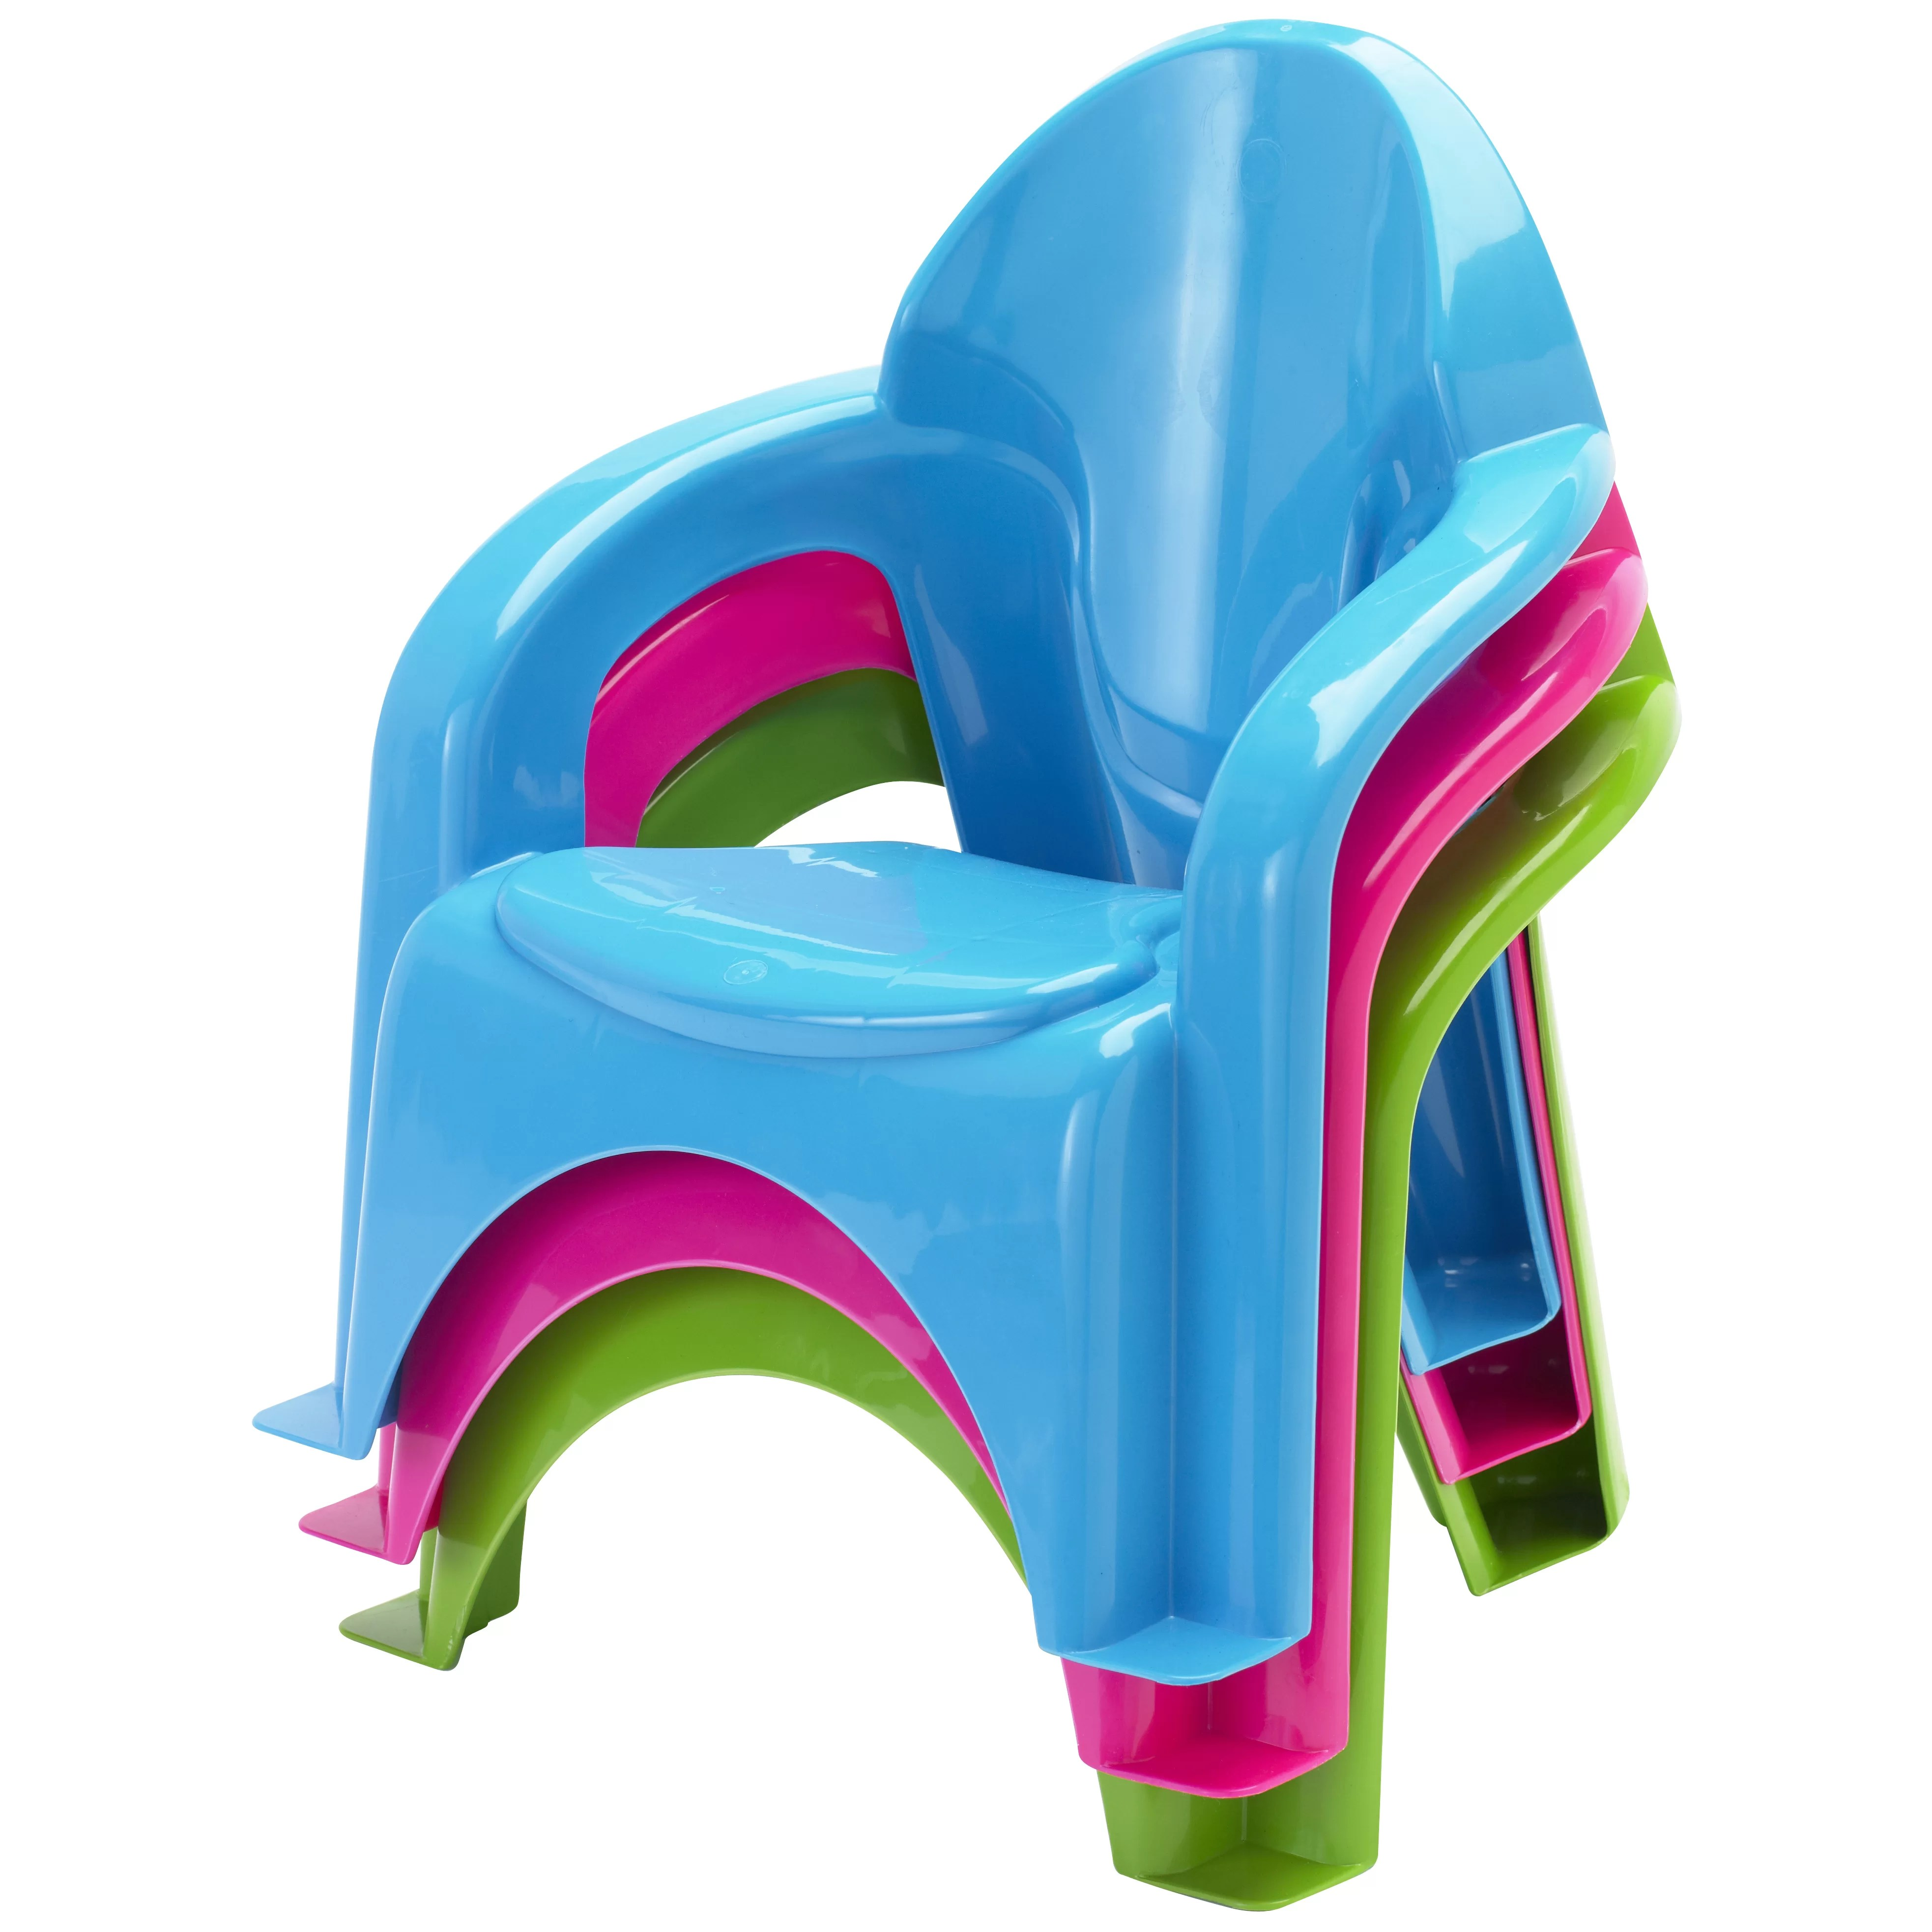 Plastic Kids Chairs Stacking Kids Chair